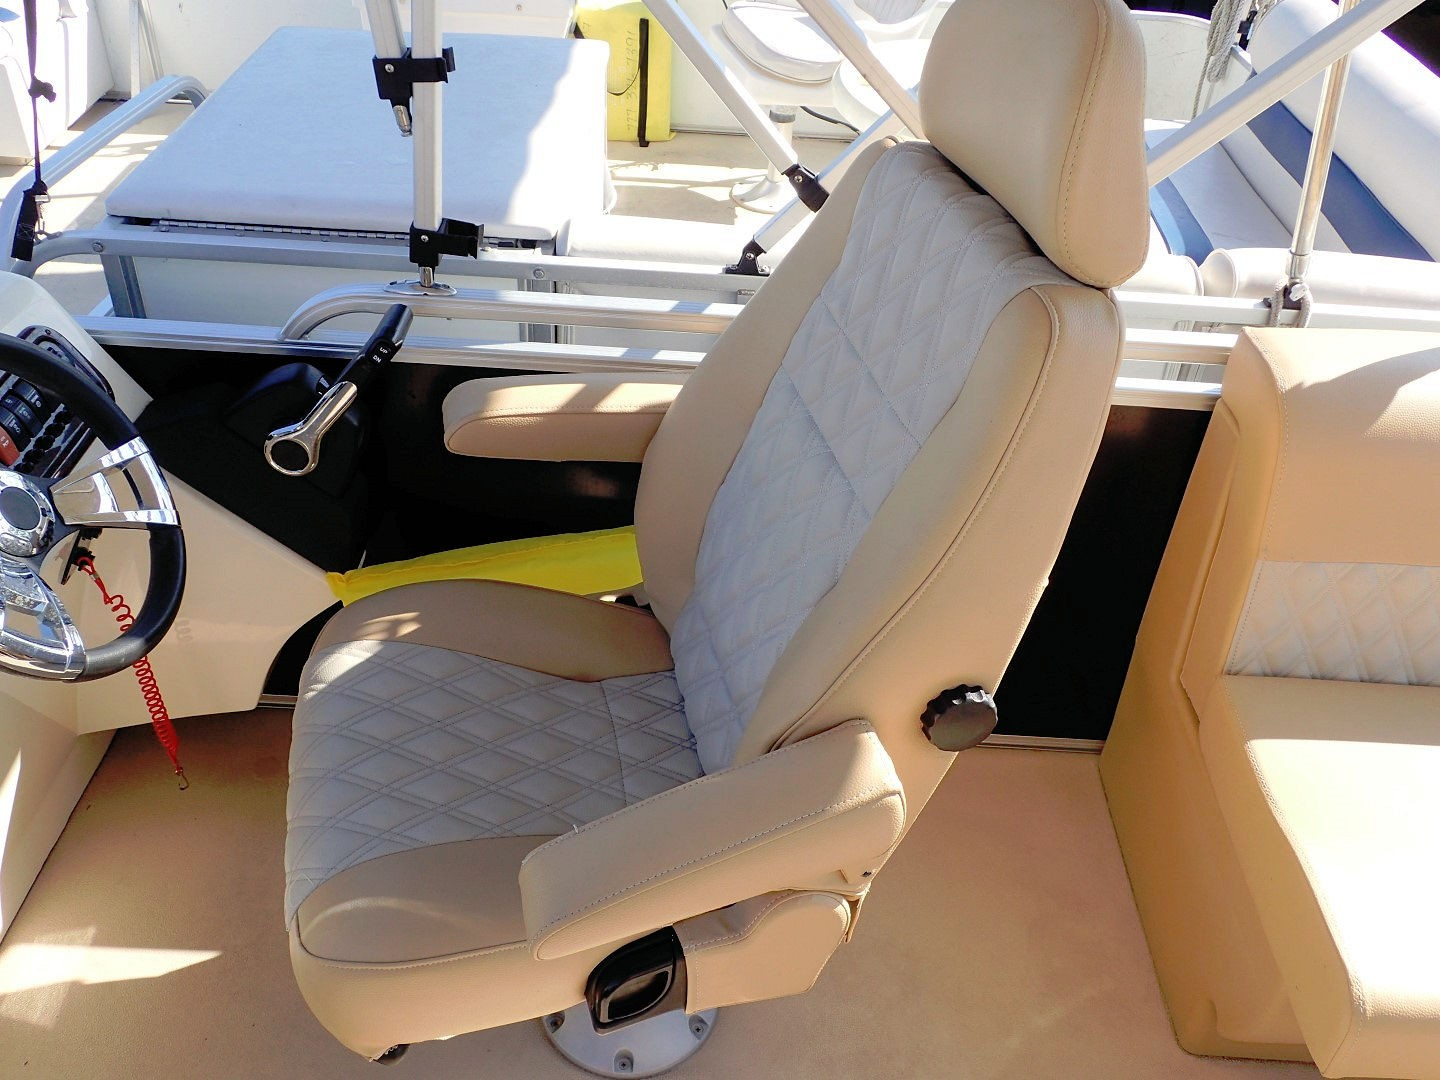 Remarkable 22 Foot Premium Party Barge Pontoon Boat Rental Picture Alphanode Cool Chair Designs And Ideas Alphanodeonline